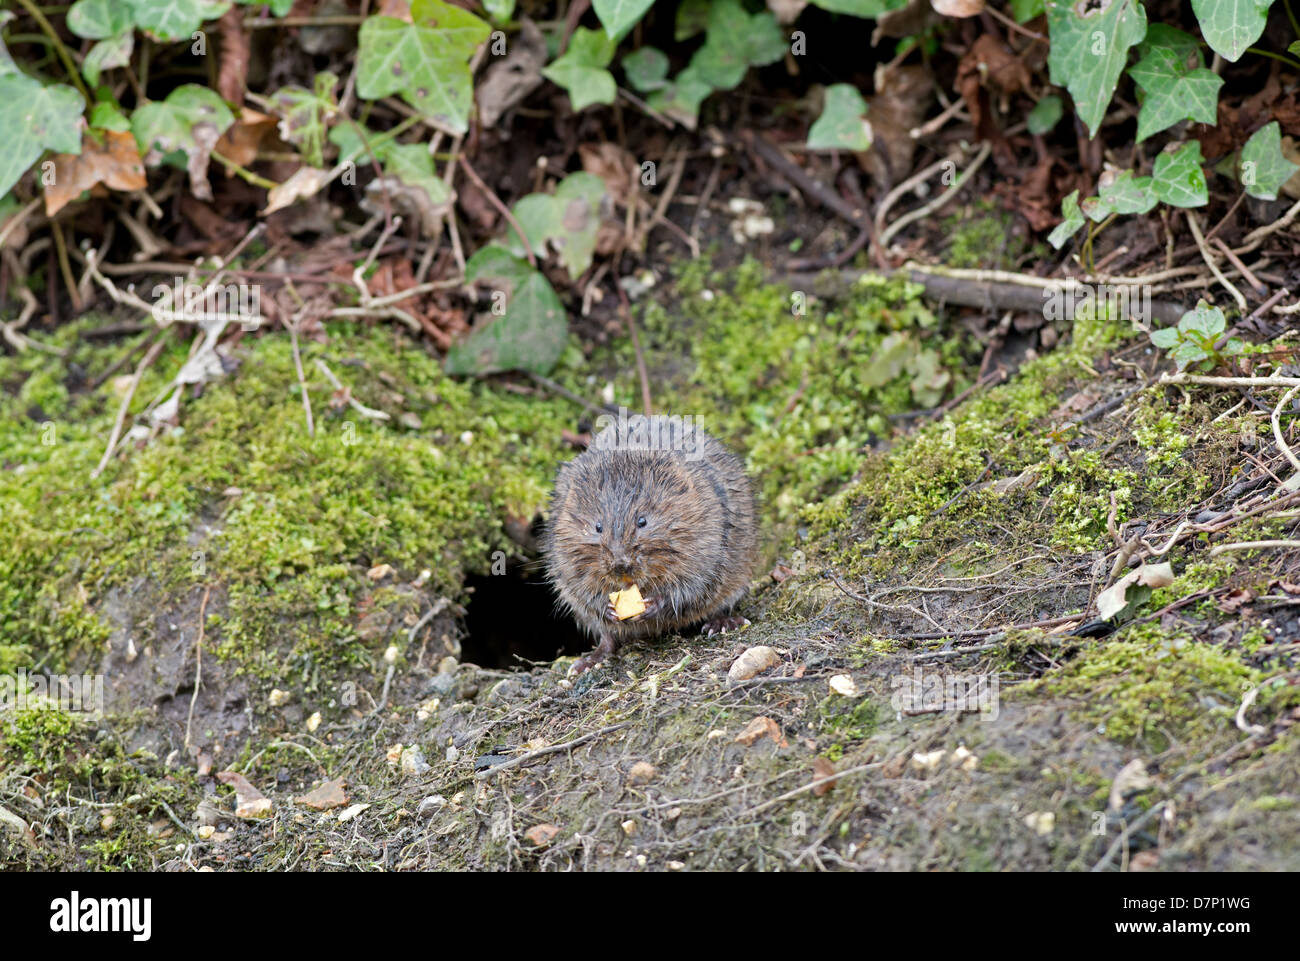 Water Vole - Arvicola terrestris feeding. Spring. UK - Stock Image